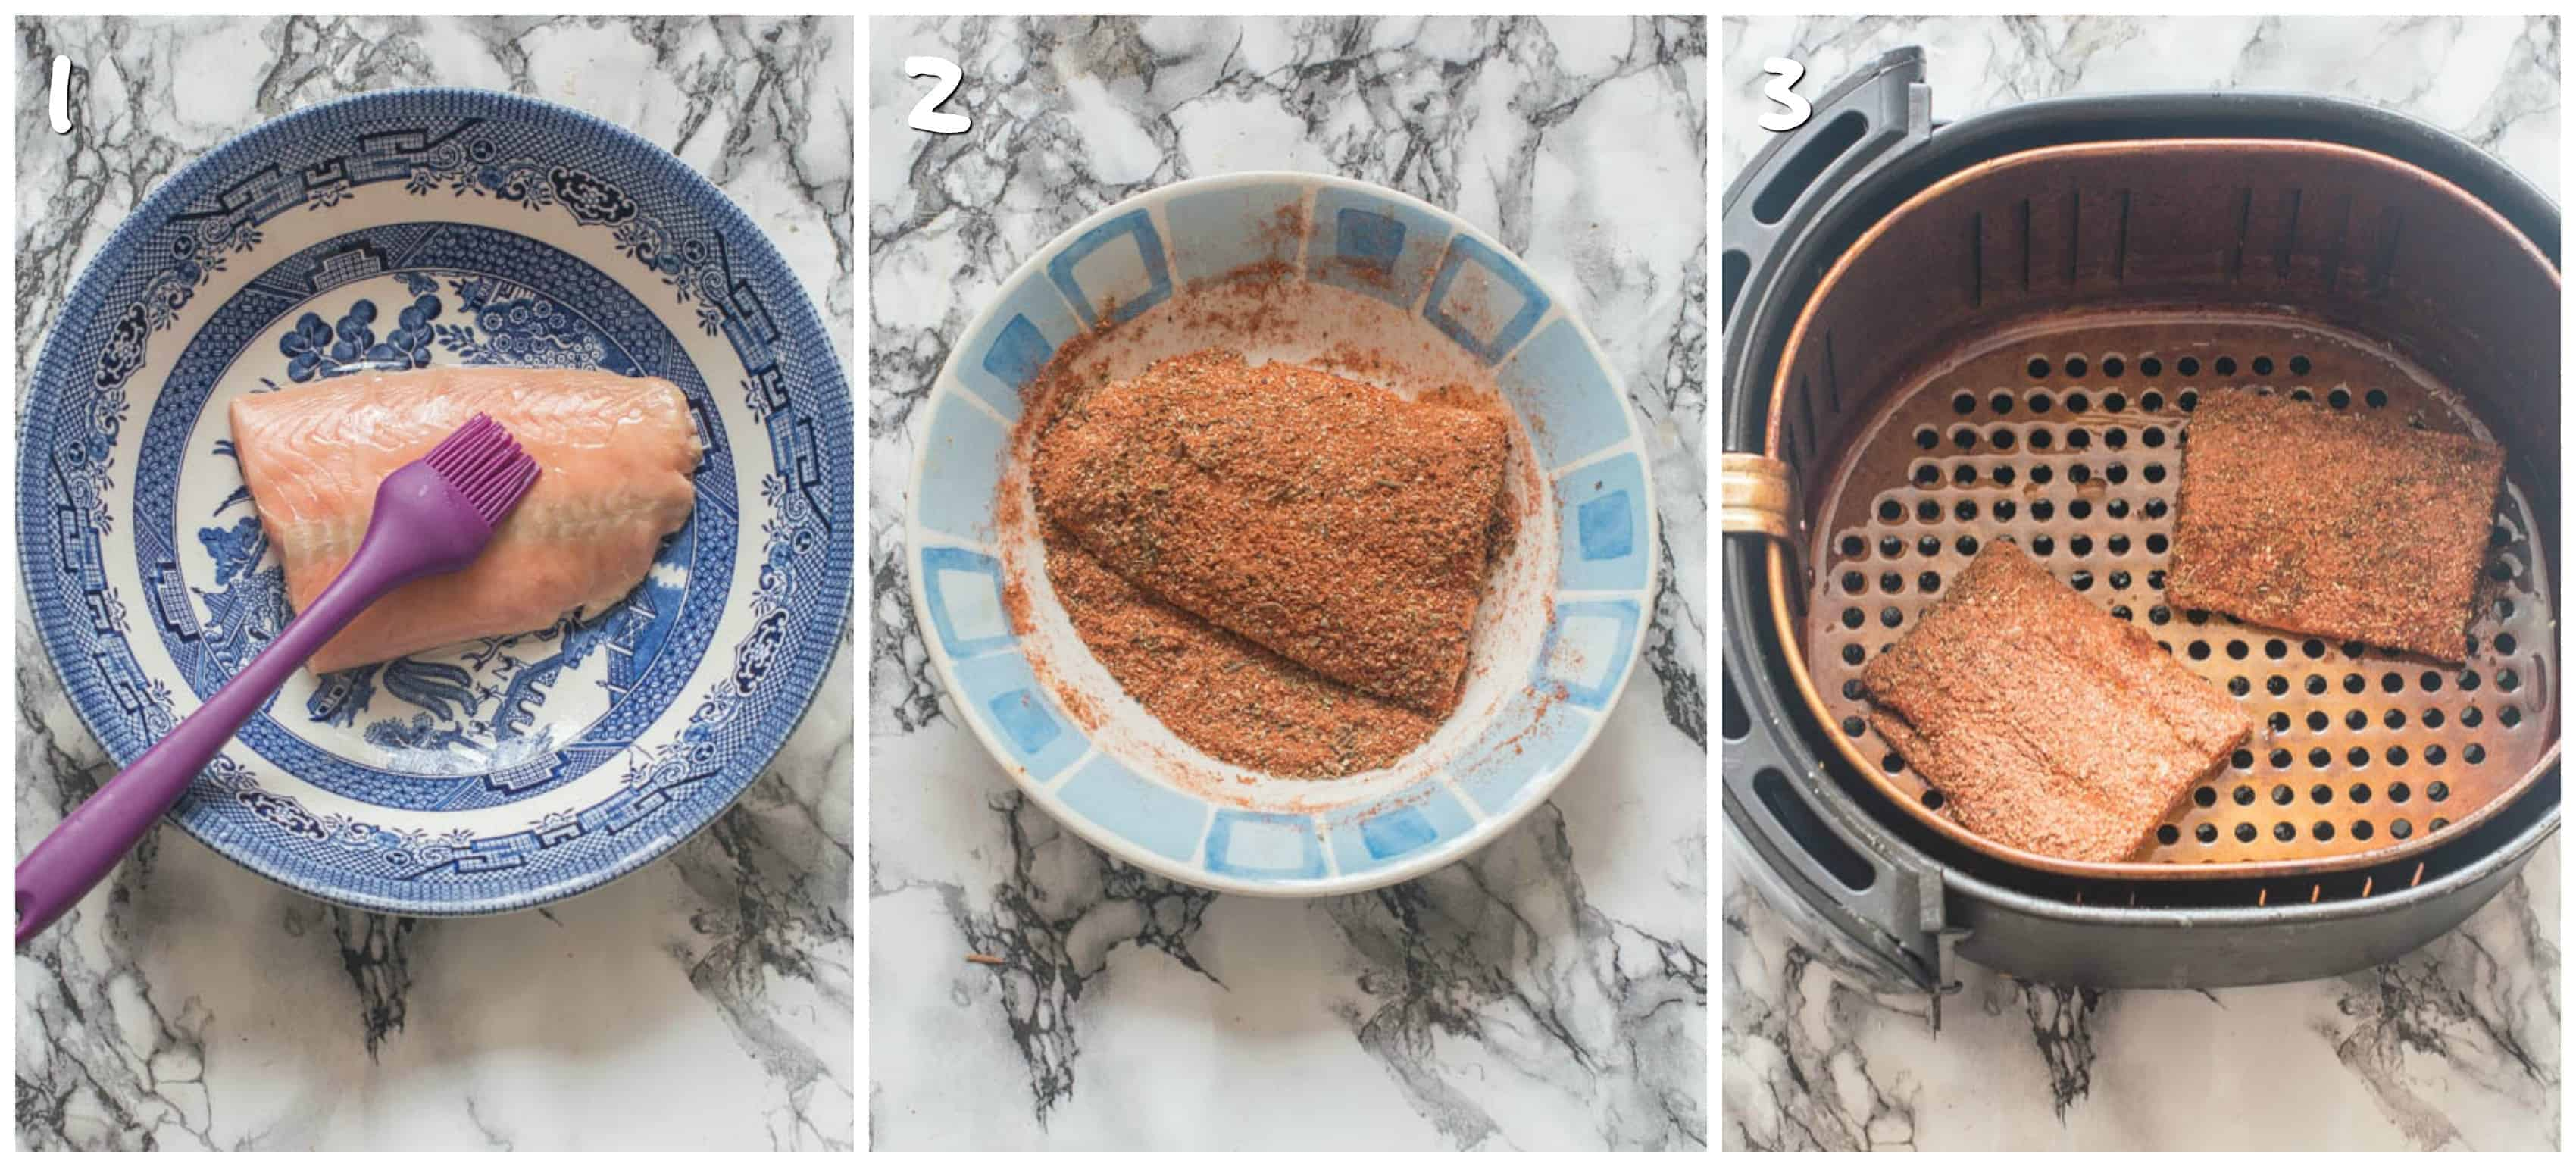 Steps 1-3 for seasoning the salmon fillets